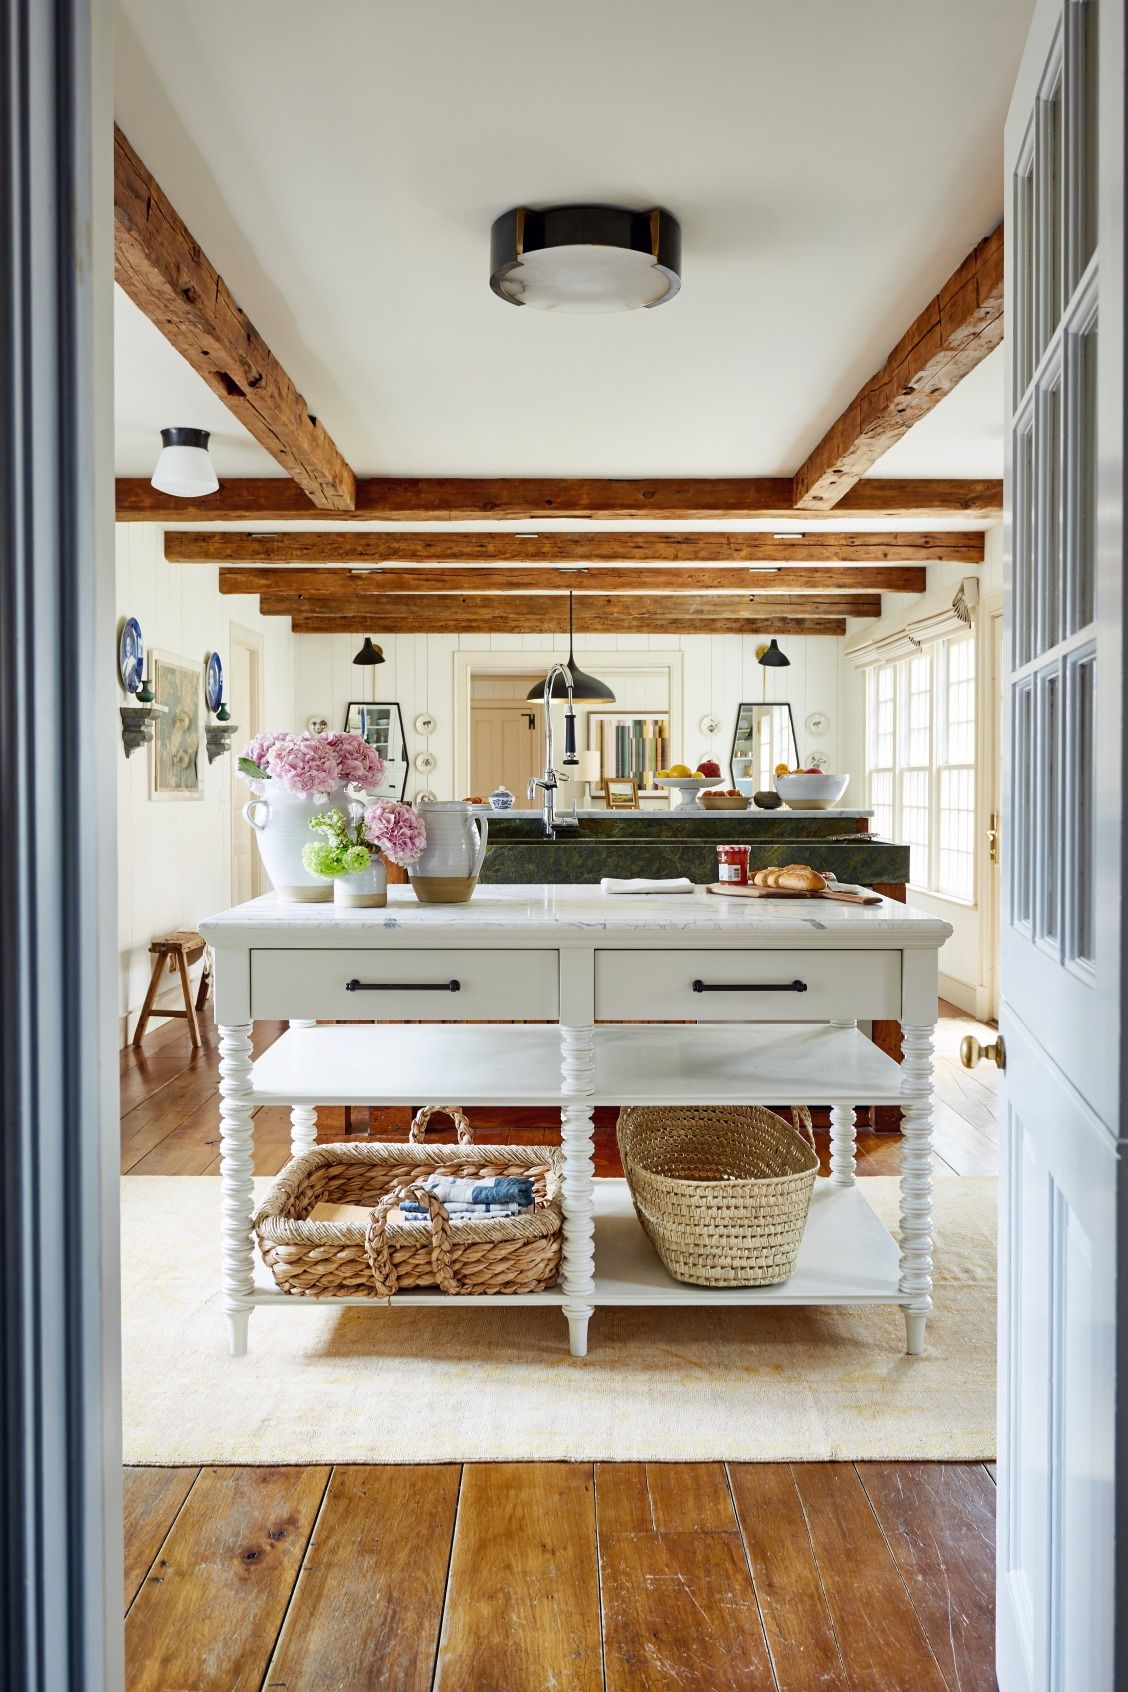 A view across the kitchen over the